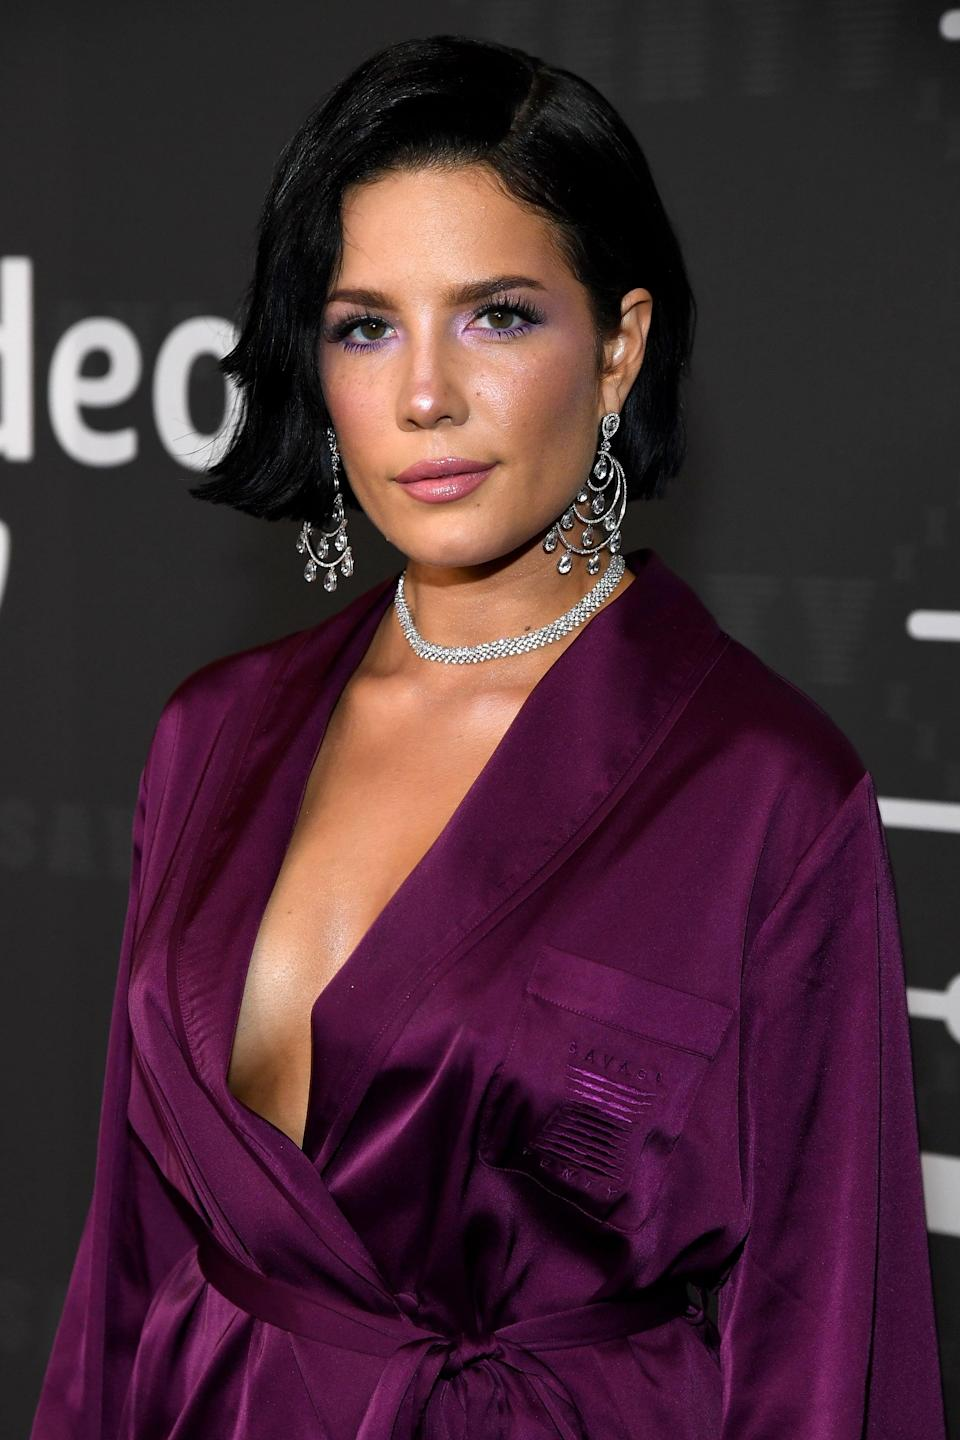 BROOKLYN, NEW YORK - SEPTEMBER 10:  Halsey attends Savage X Fenty Show Presented By Amazon Prime Video - Arrivals at Barclays Center on September 10, 2019 in Brooklyn, New York. (Photo by Kevin Mazur/Getty Images for Savage X Fenty Show Presented by Amazon Prime Video )